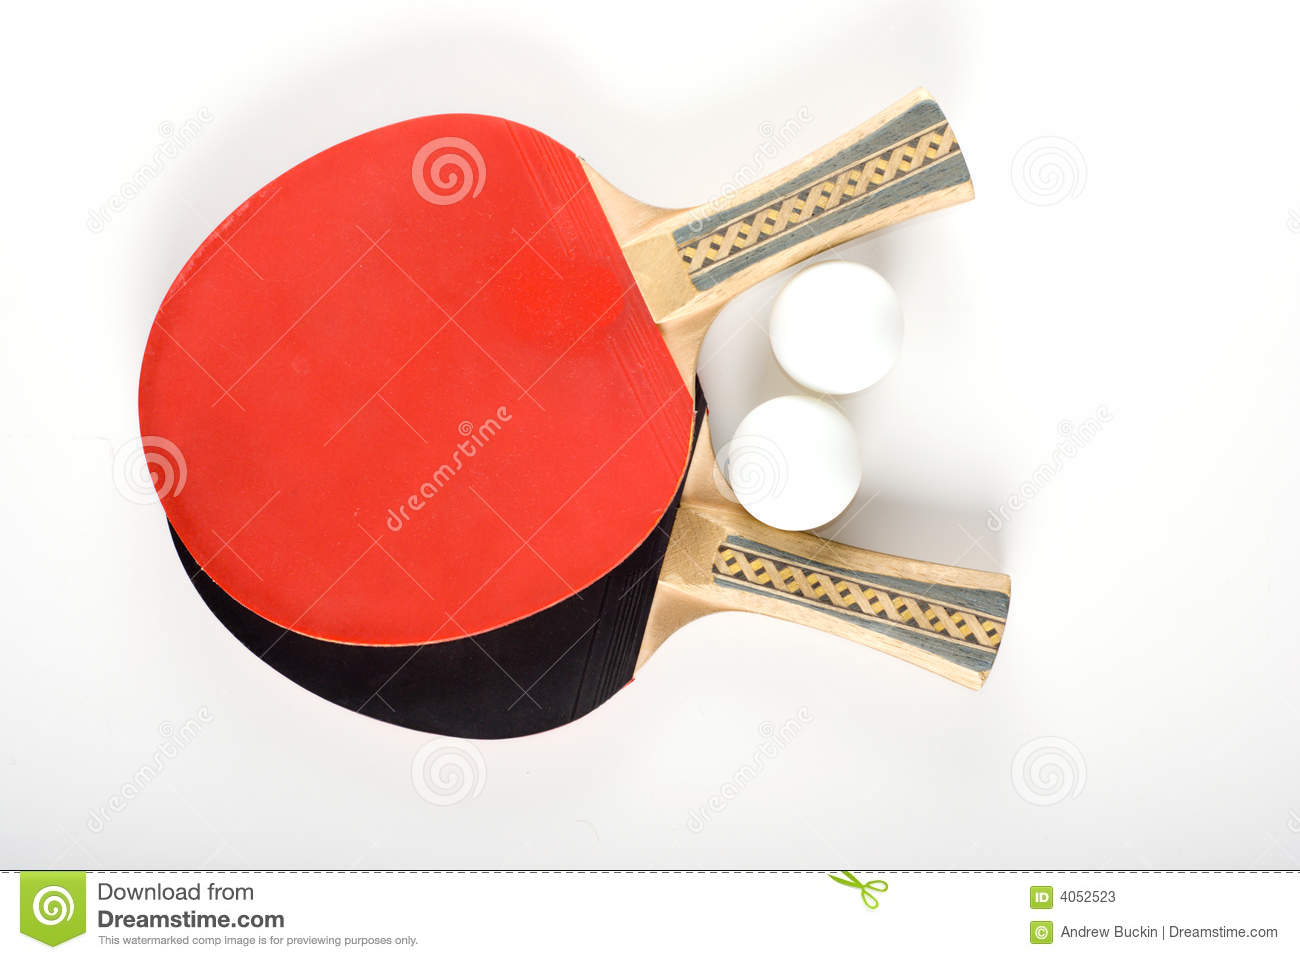 Ping-pong equipment isolated on the white background.